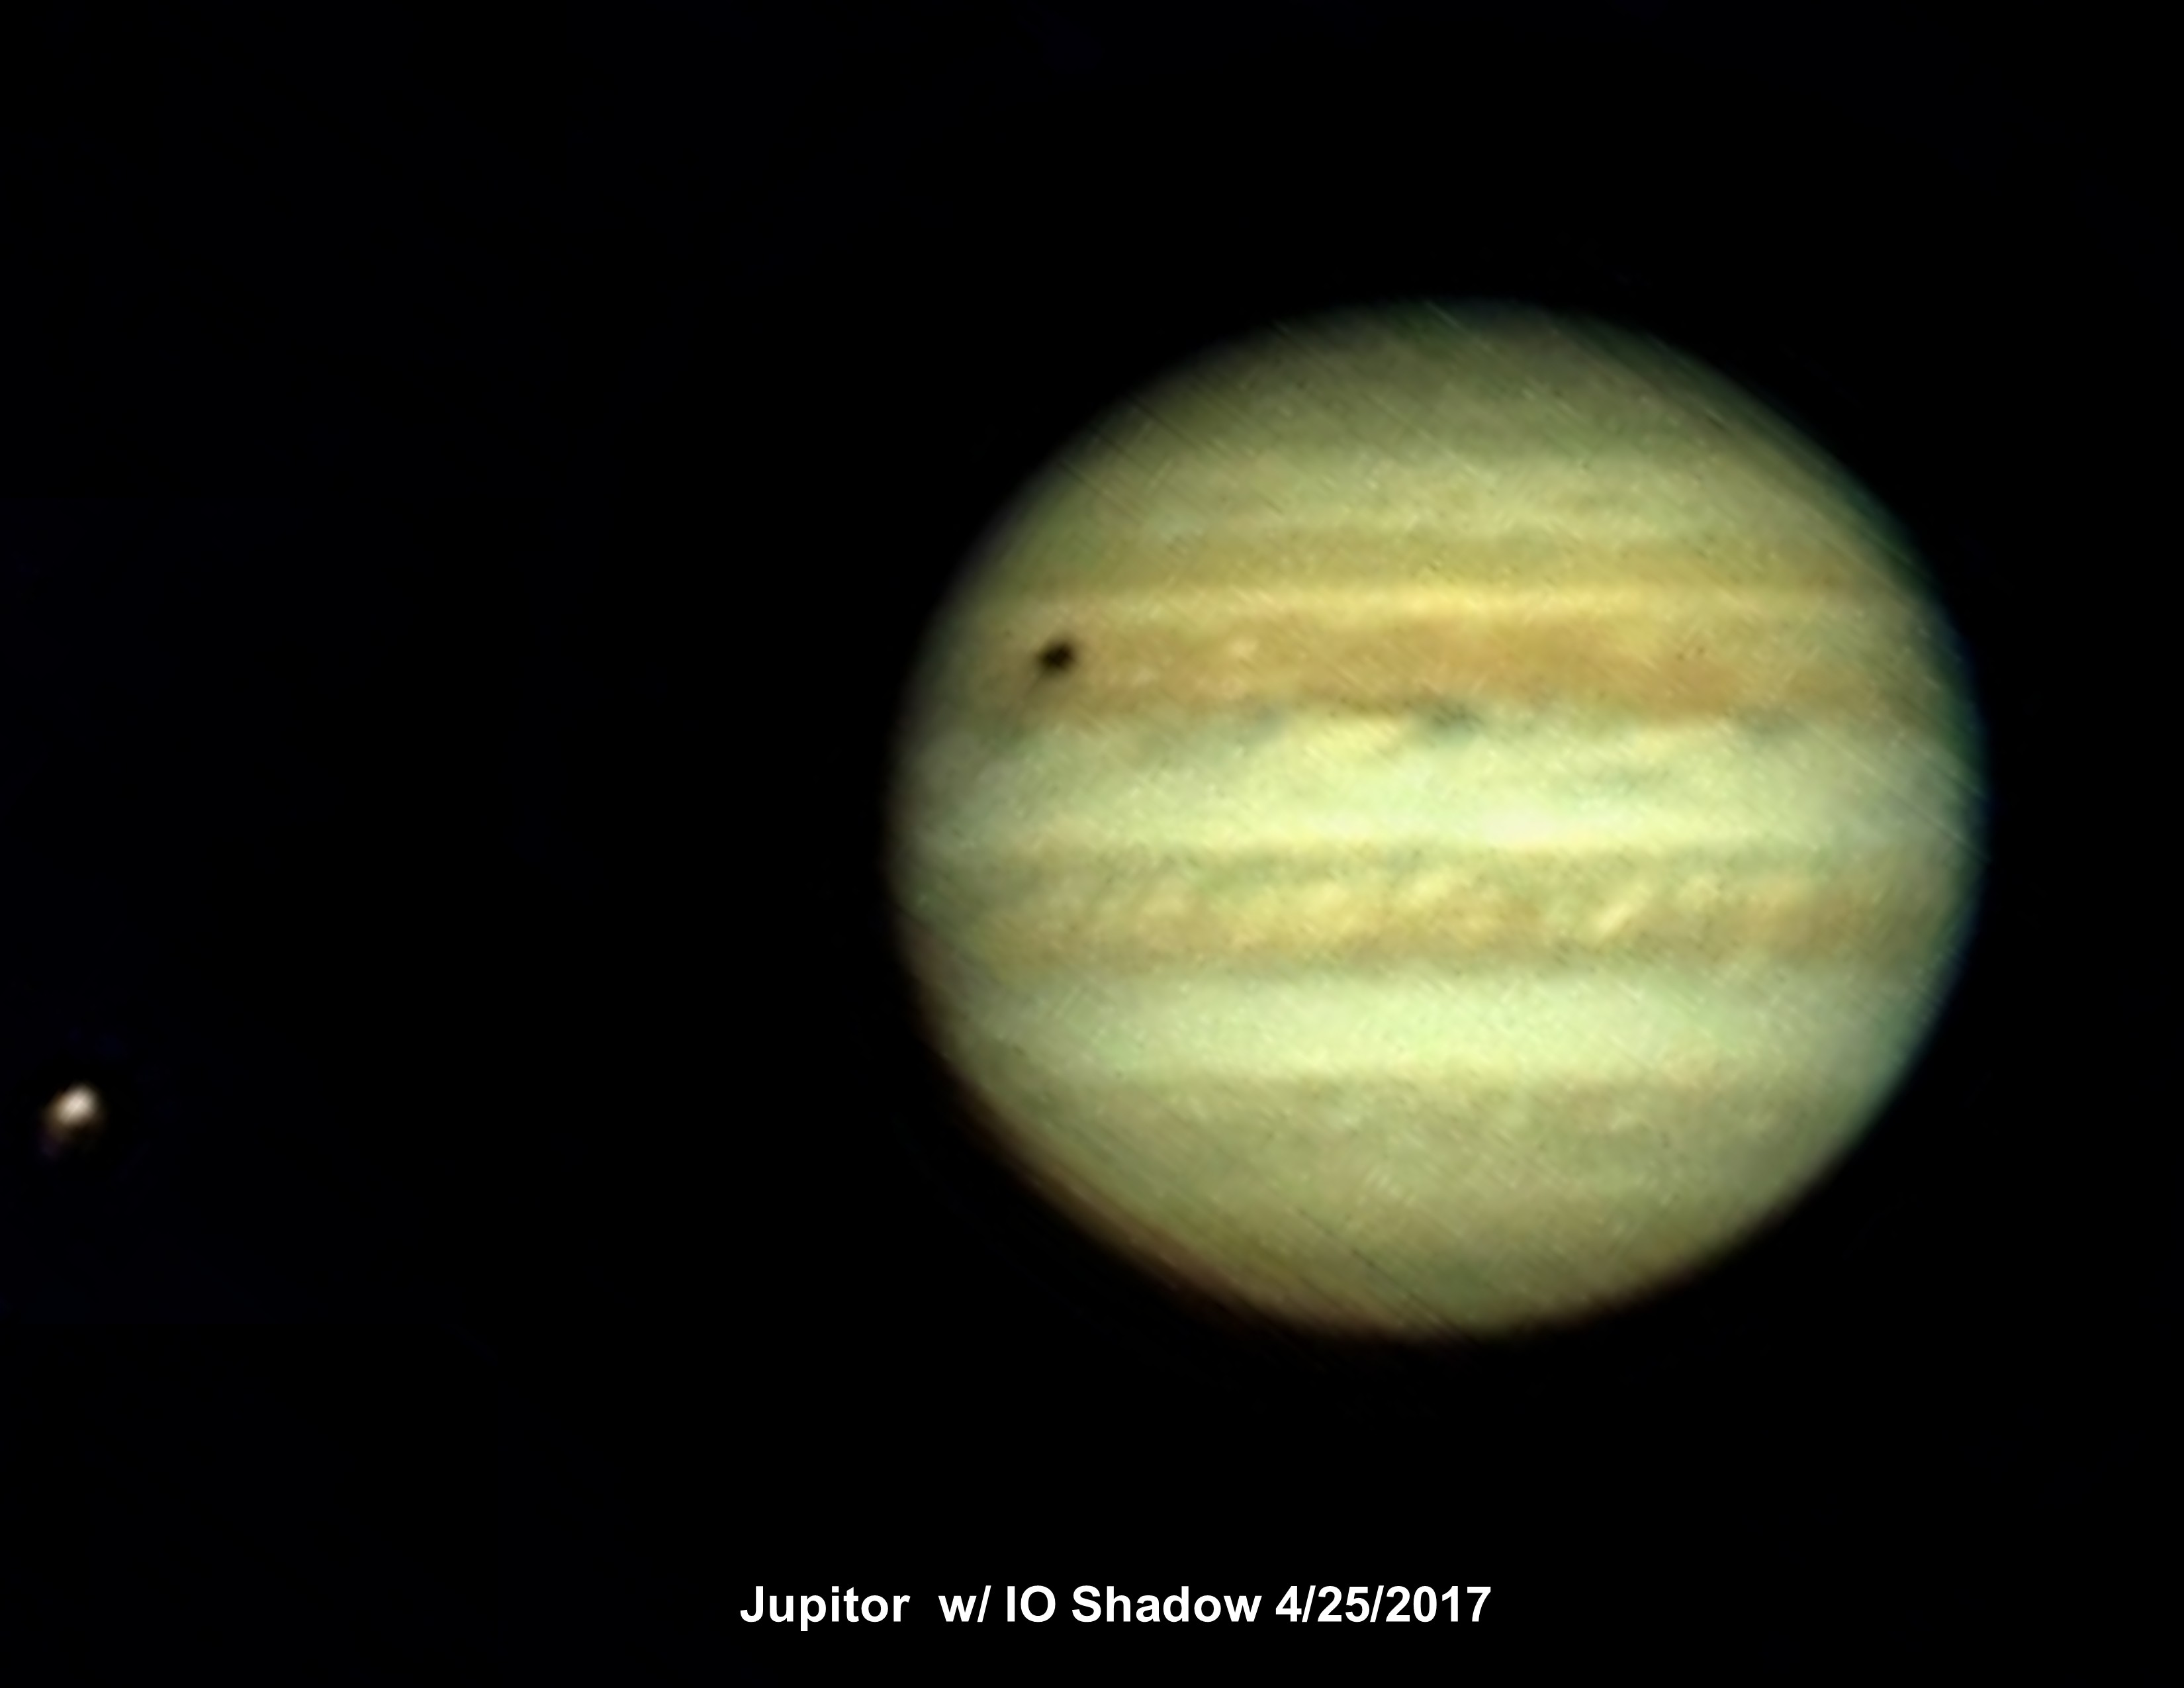 Jupitor and IO shadow 4-25-17